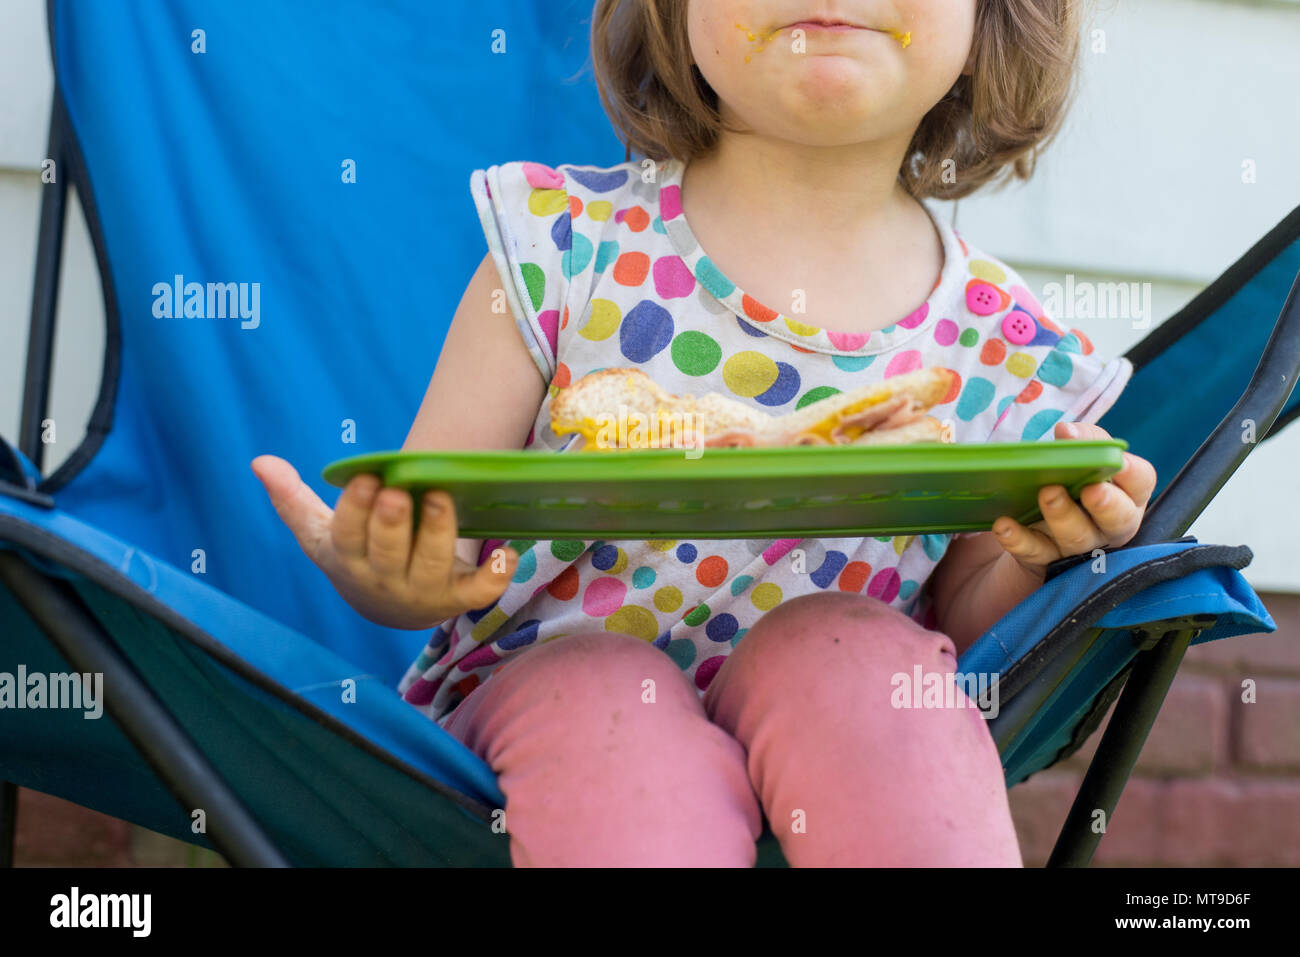 A toddler girl holding a ham sandwich outside - Stock Image